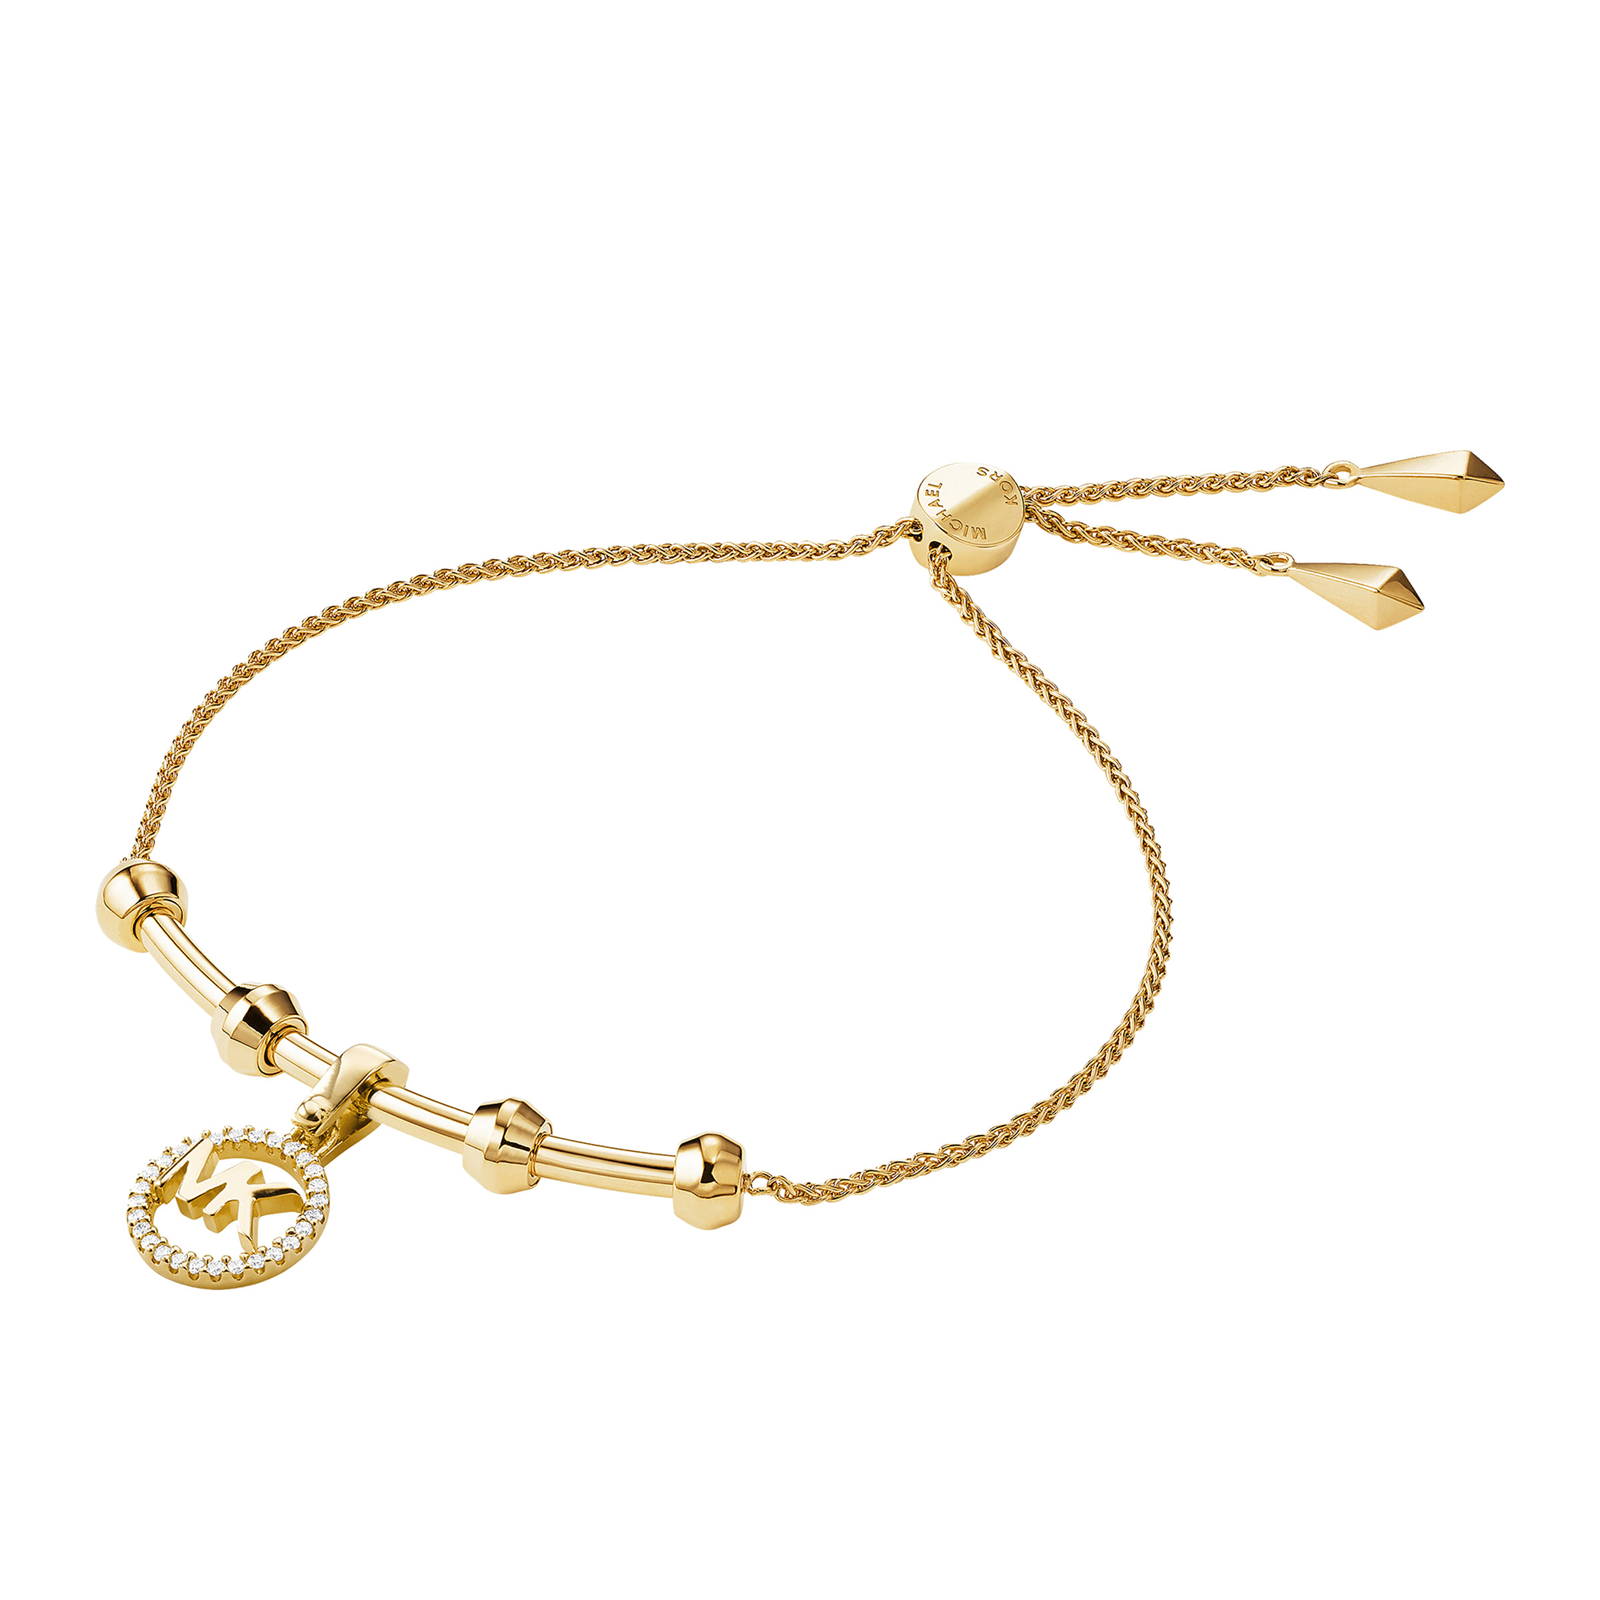 Michael Kors Custom Kors 14ct Gold Plated Charm Bracelet Size M